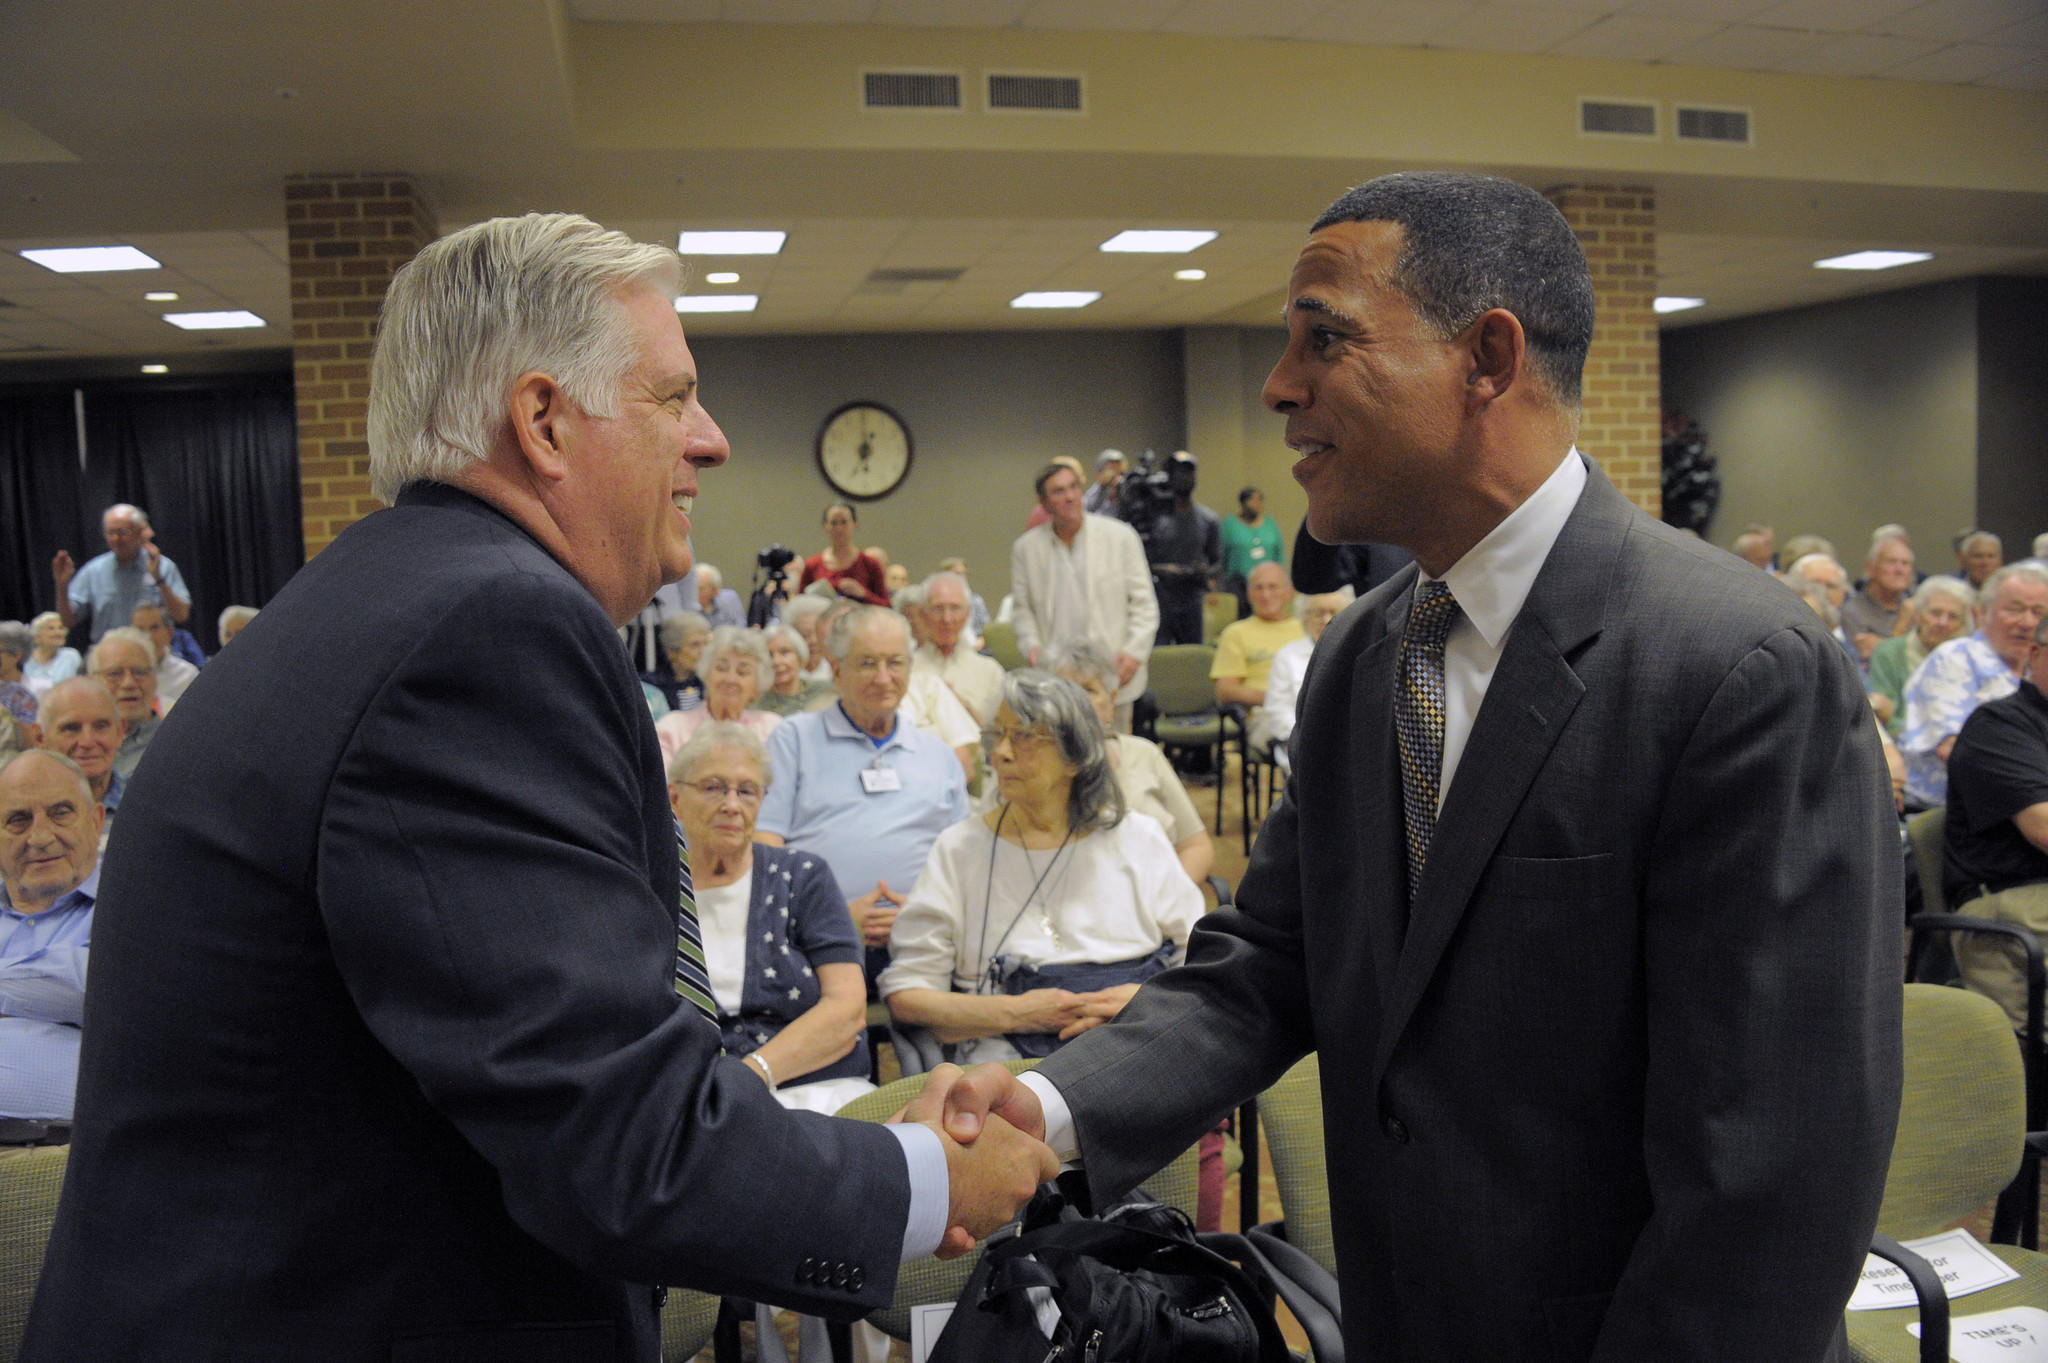 GOP candidate Larry Hogan (left) shakes hands with Lt. Gov. Anthony Brown before a gubernatorial candidate's forum at Charlestown Retirement community.